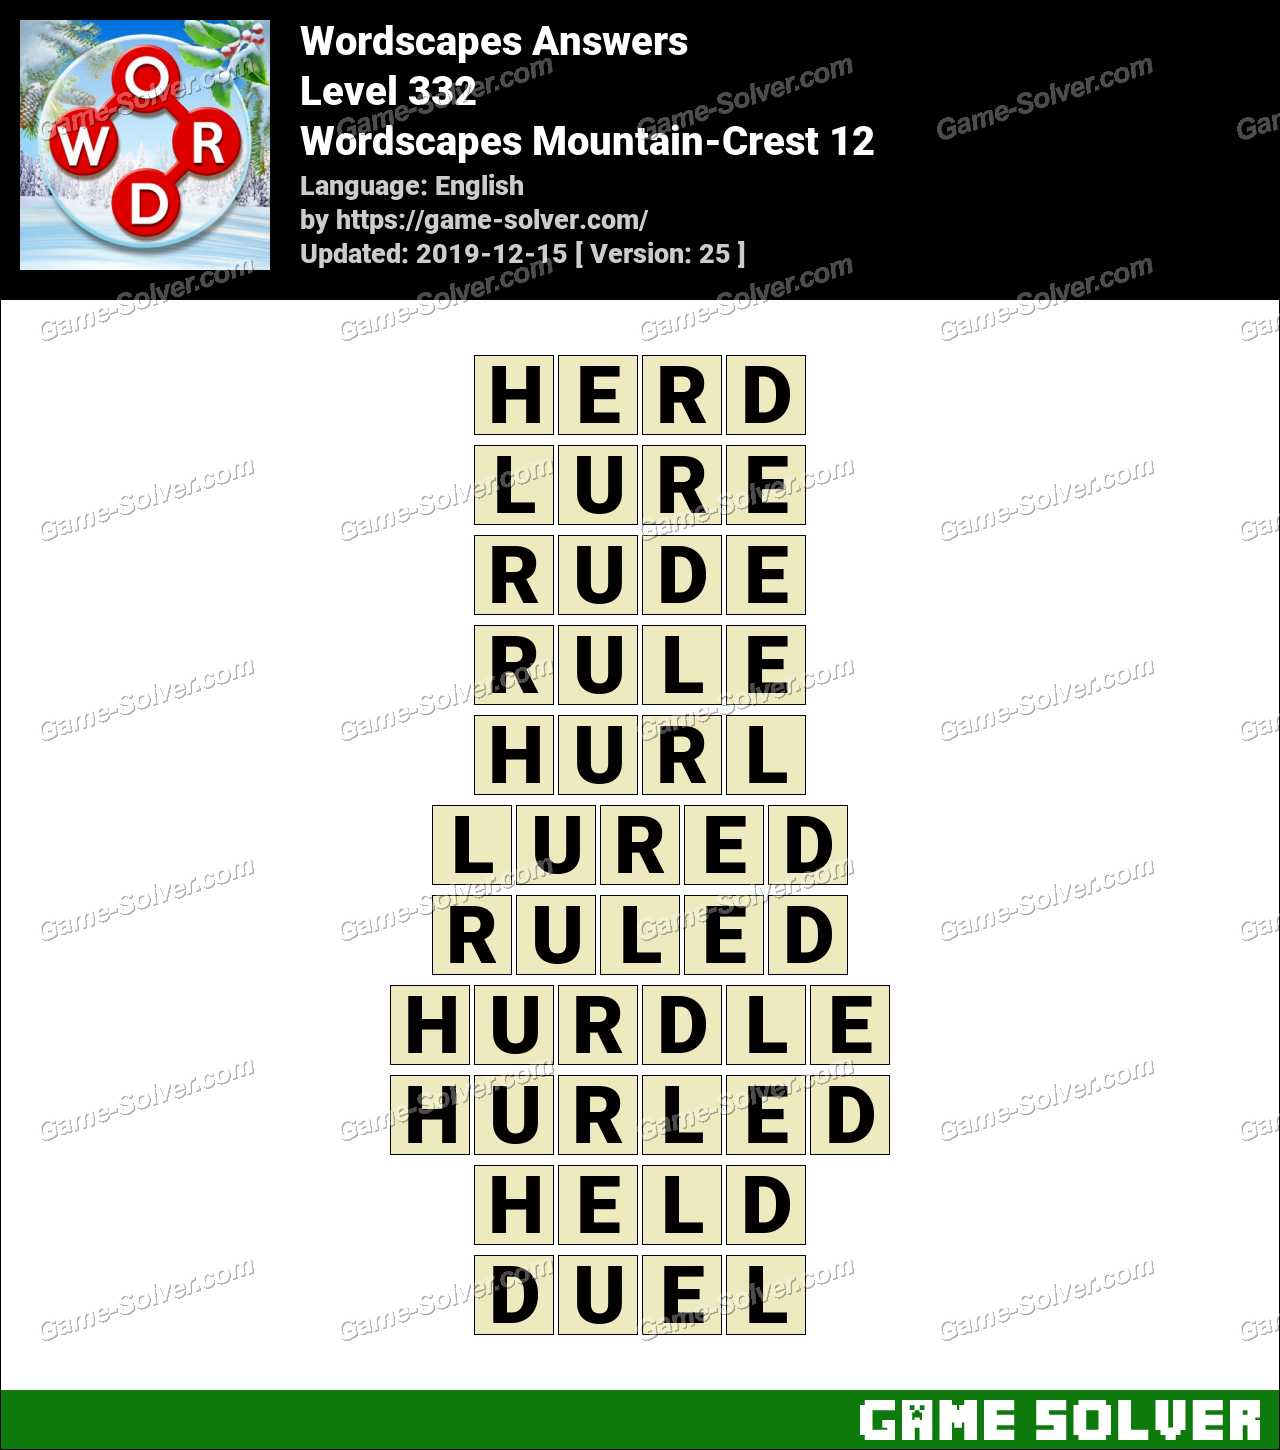 Wordscapes Mountain-Crest 12 Answers